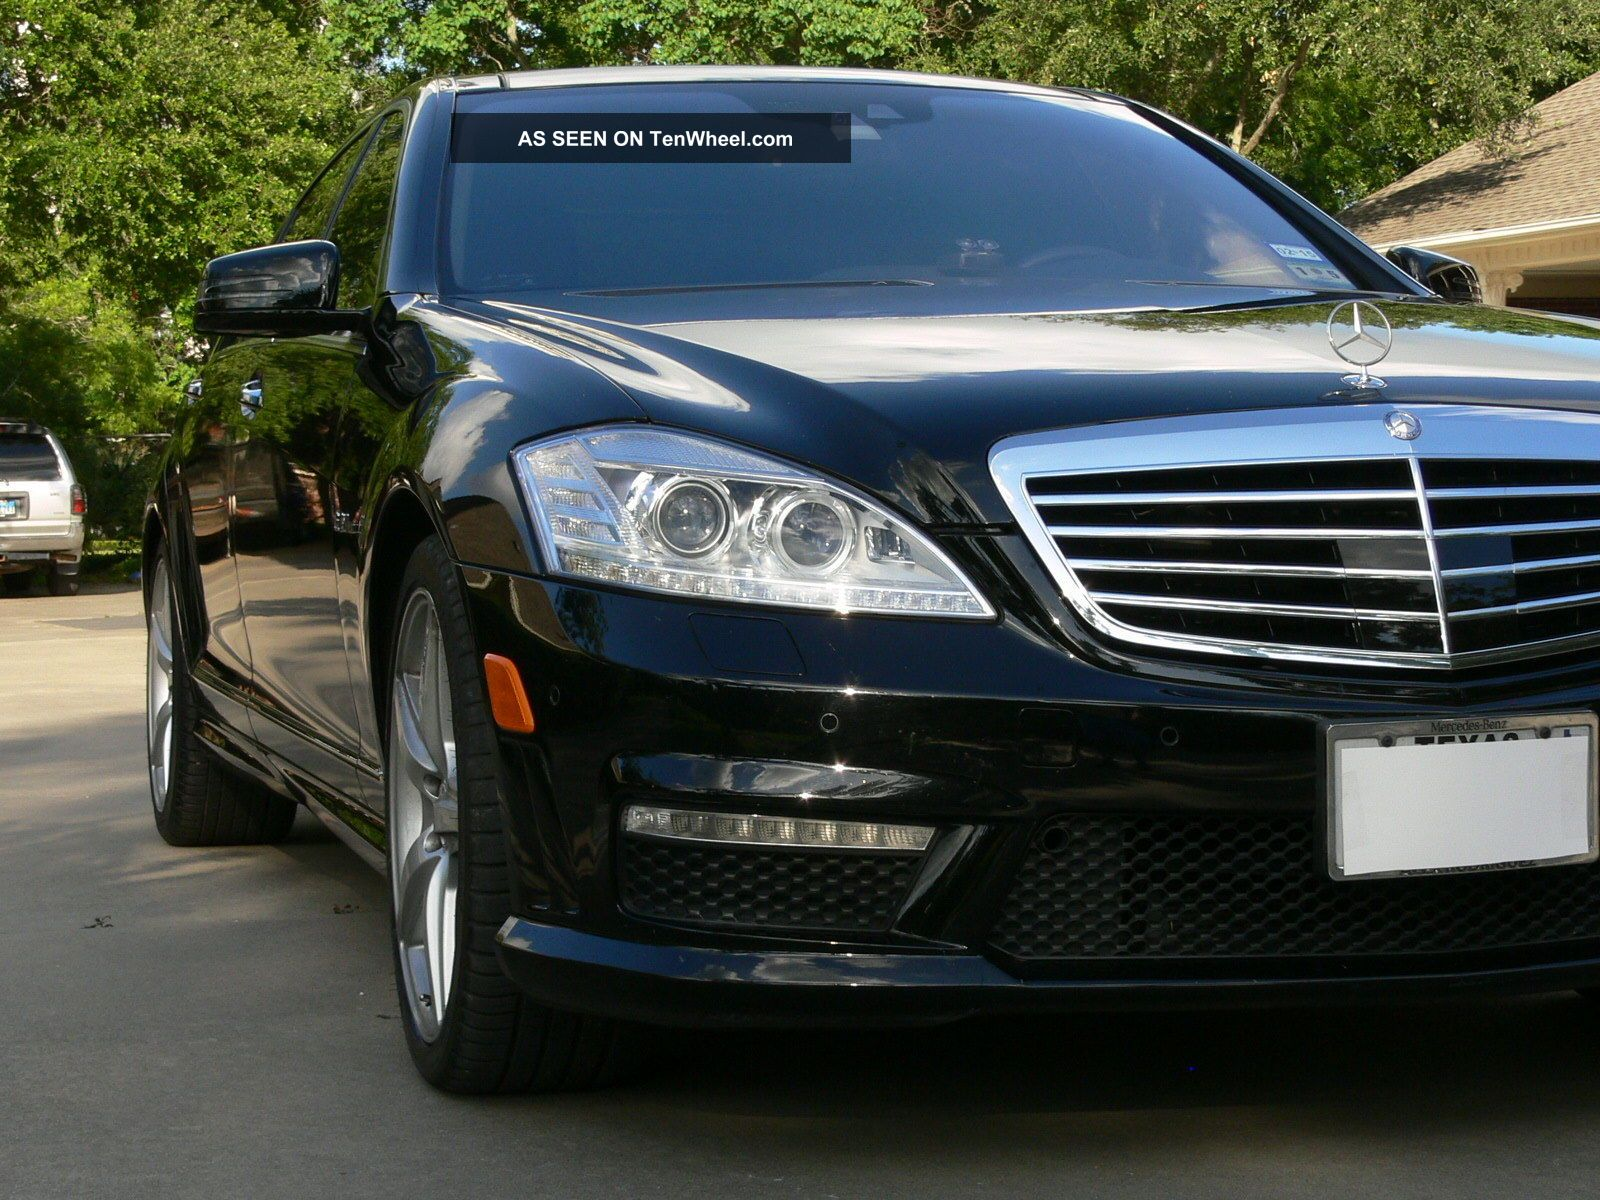 2010 mercedes benz s63 amg serviced car fax garage kept for Garage amg auto